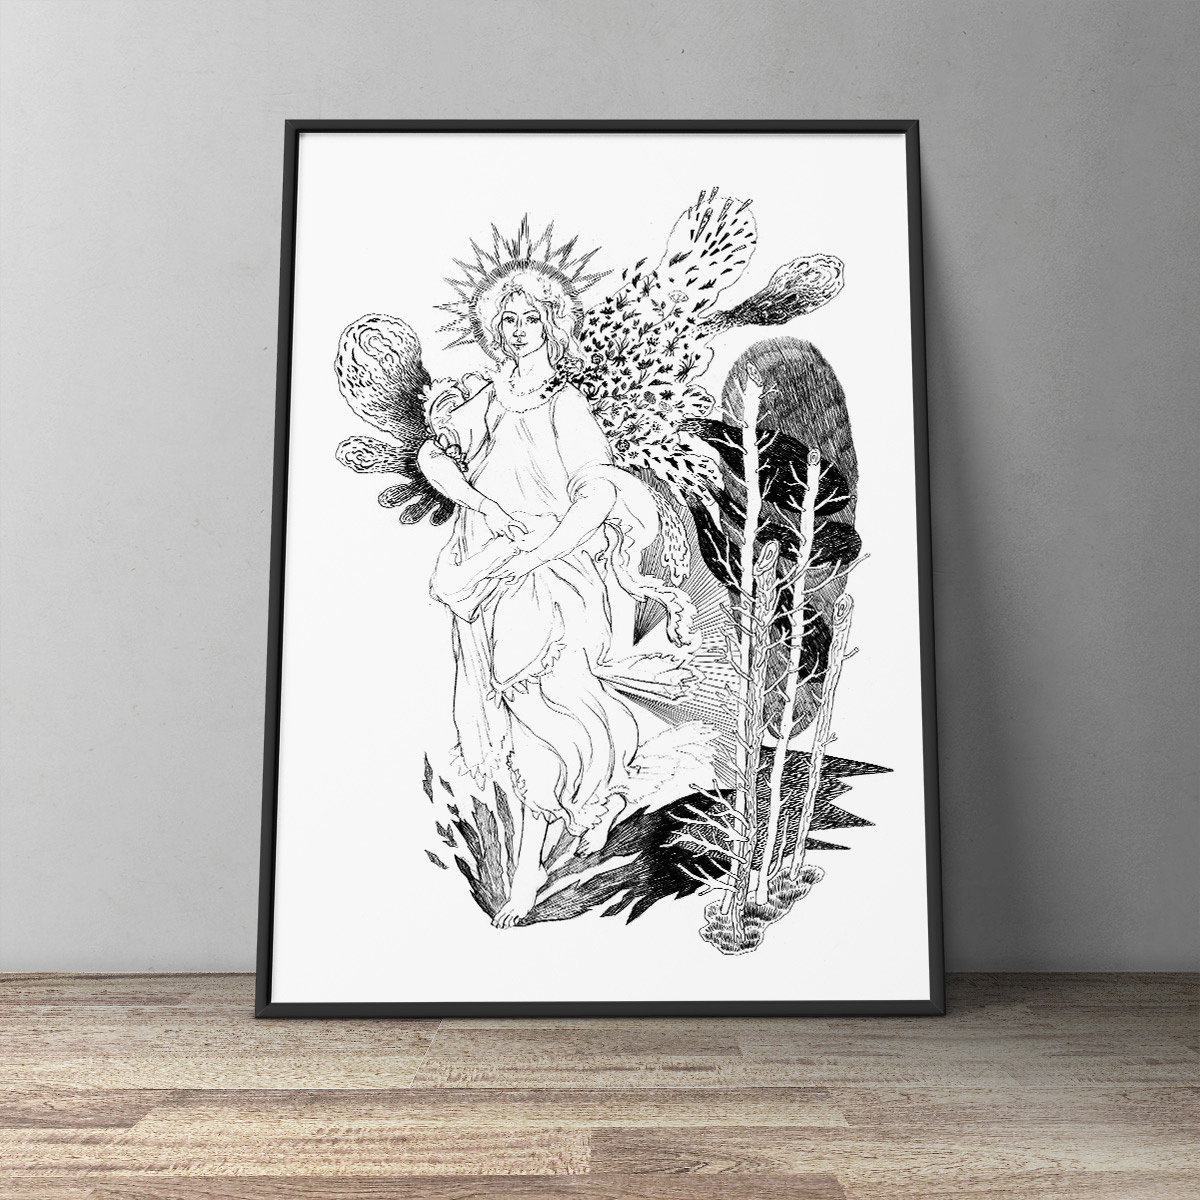 art-prints, gliceé, aesthetic, figurative, monochrome, bodies, botany, sexuality, black, white, ink, paper, beautiful, black-and-white, contemporary-art, danish, decorative, female, flowers, interior, interior-design, modern, modern-art, nordic, nude, plants, pretty, scandinavien, Buy original high quality art. Paintings, drawings, limited edition prints & posters by talented artists.